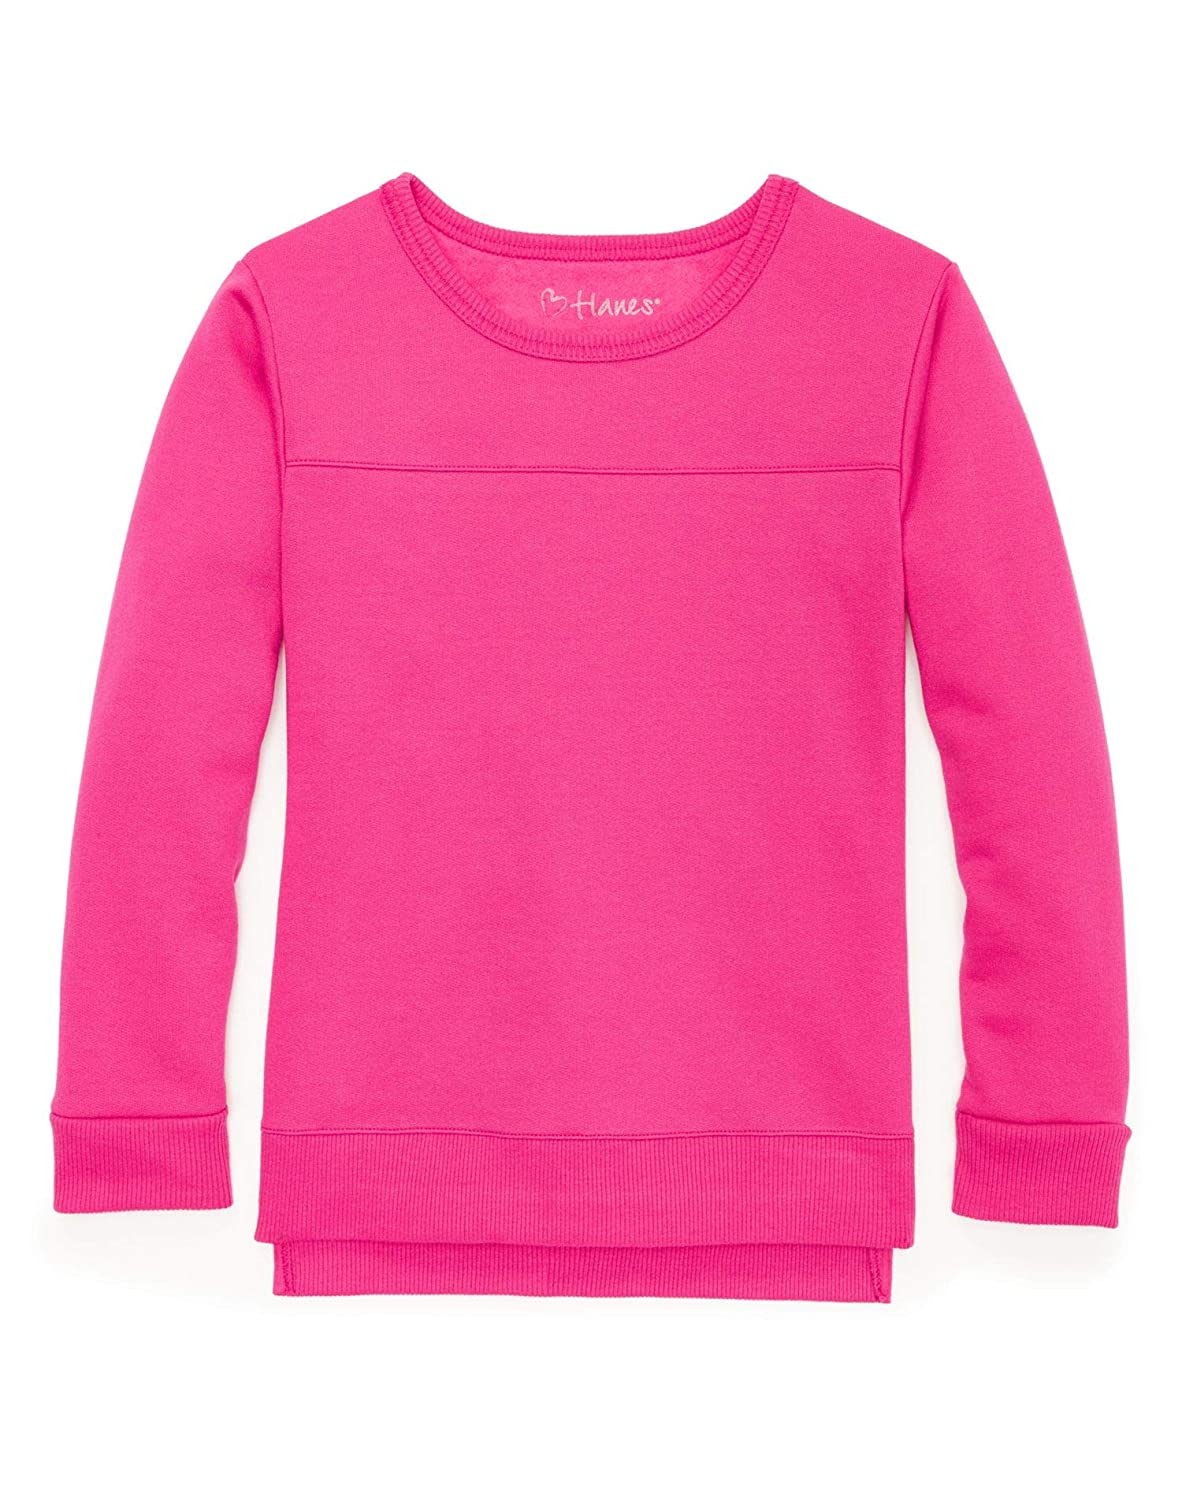 Hanes Girls High-Low Sweatshirt K375